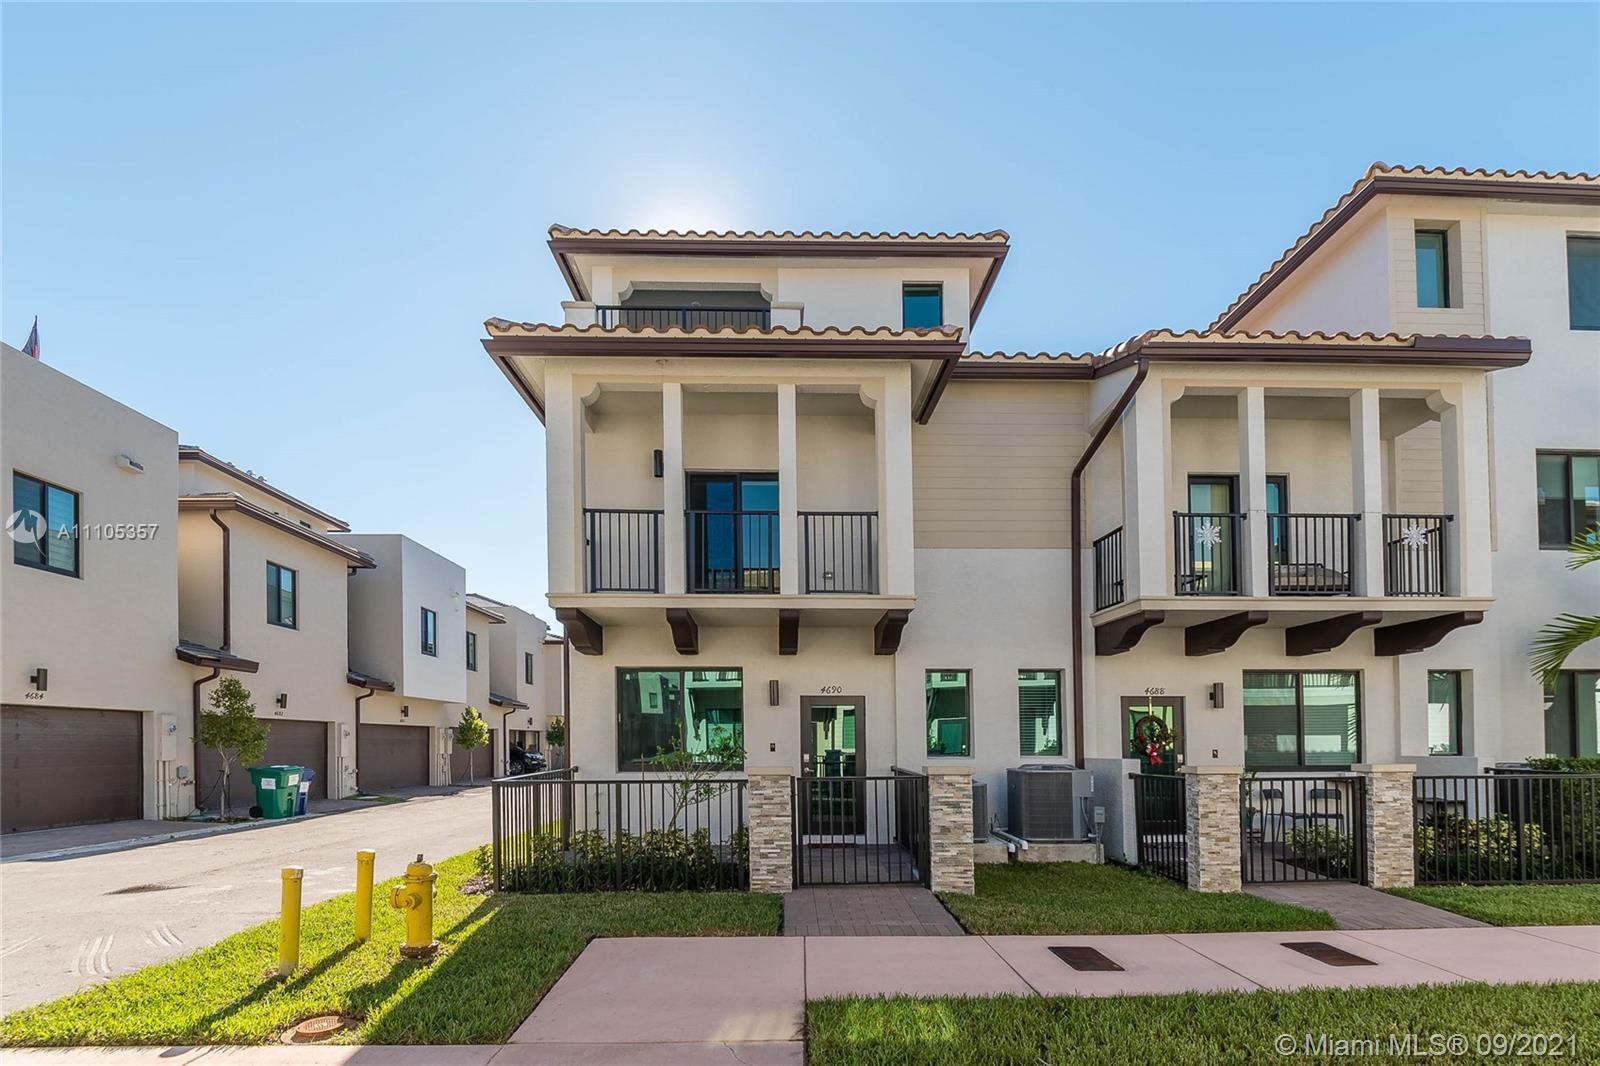 Tastefully decorated new construction 3 level townhome in Downtown Doral! Impeccable corner unit with high end finishes and upgrades throughout. Open layout with kitchen, living room and half bath for visitors on first floor. Three spacious bedrooms with two full bathrooms on second floor and ample den / office or media room with another half bath and two open terraces on third floor. California closets on all bedrooms and high end fixtures. Impact windows and doors. Two covered garage spaces with plenty of free parking around. Total monthly HOA and Clubhouse expense is $224! Spectacular community pool, gym and clubhouse! Walking distance to restaurants, bars and stores on Downtown Doral… Property is rented until February 2022.